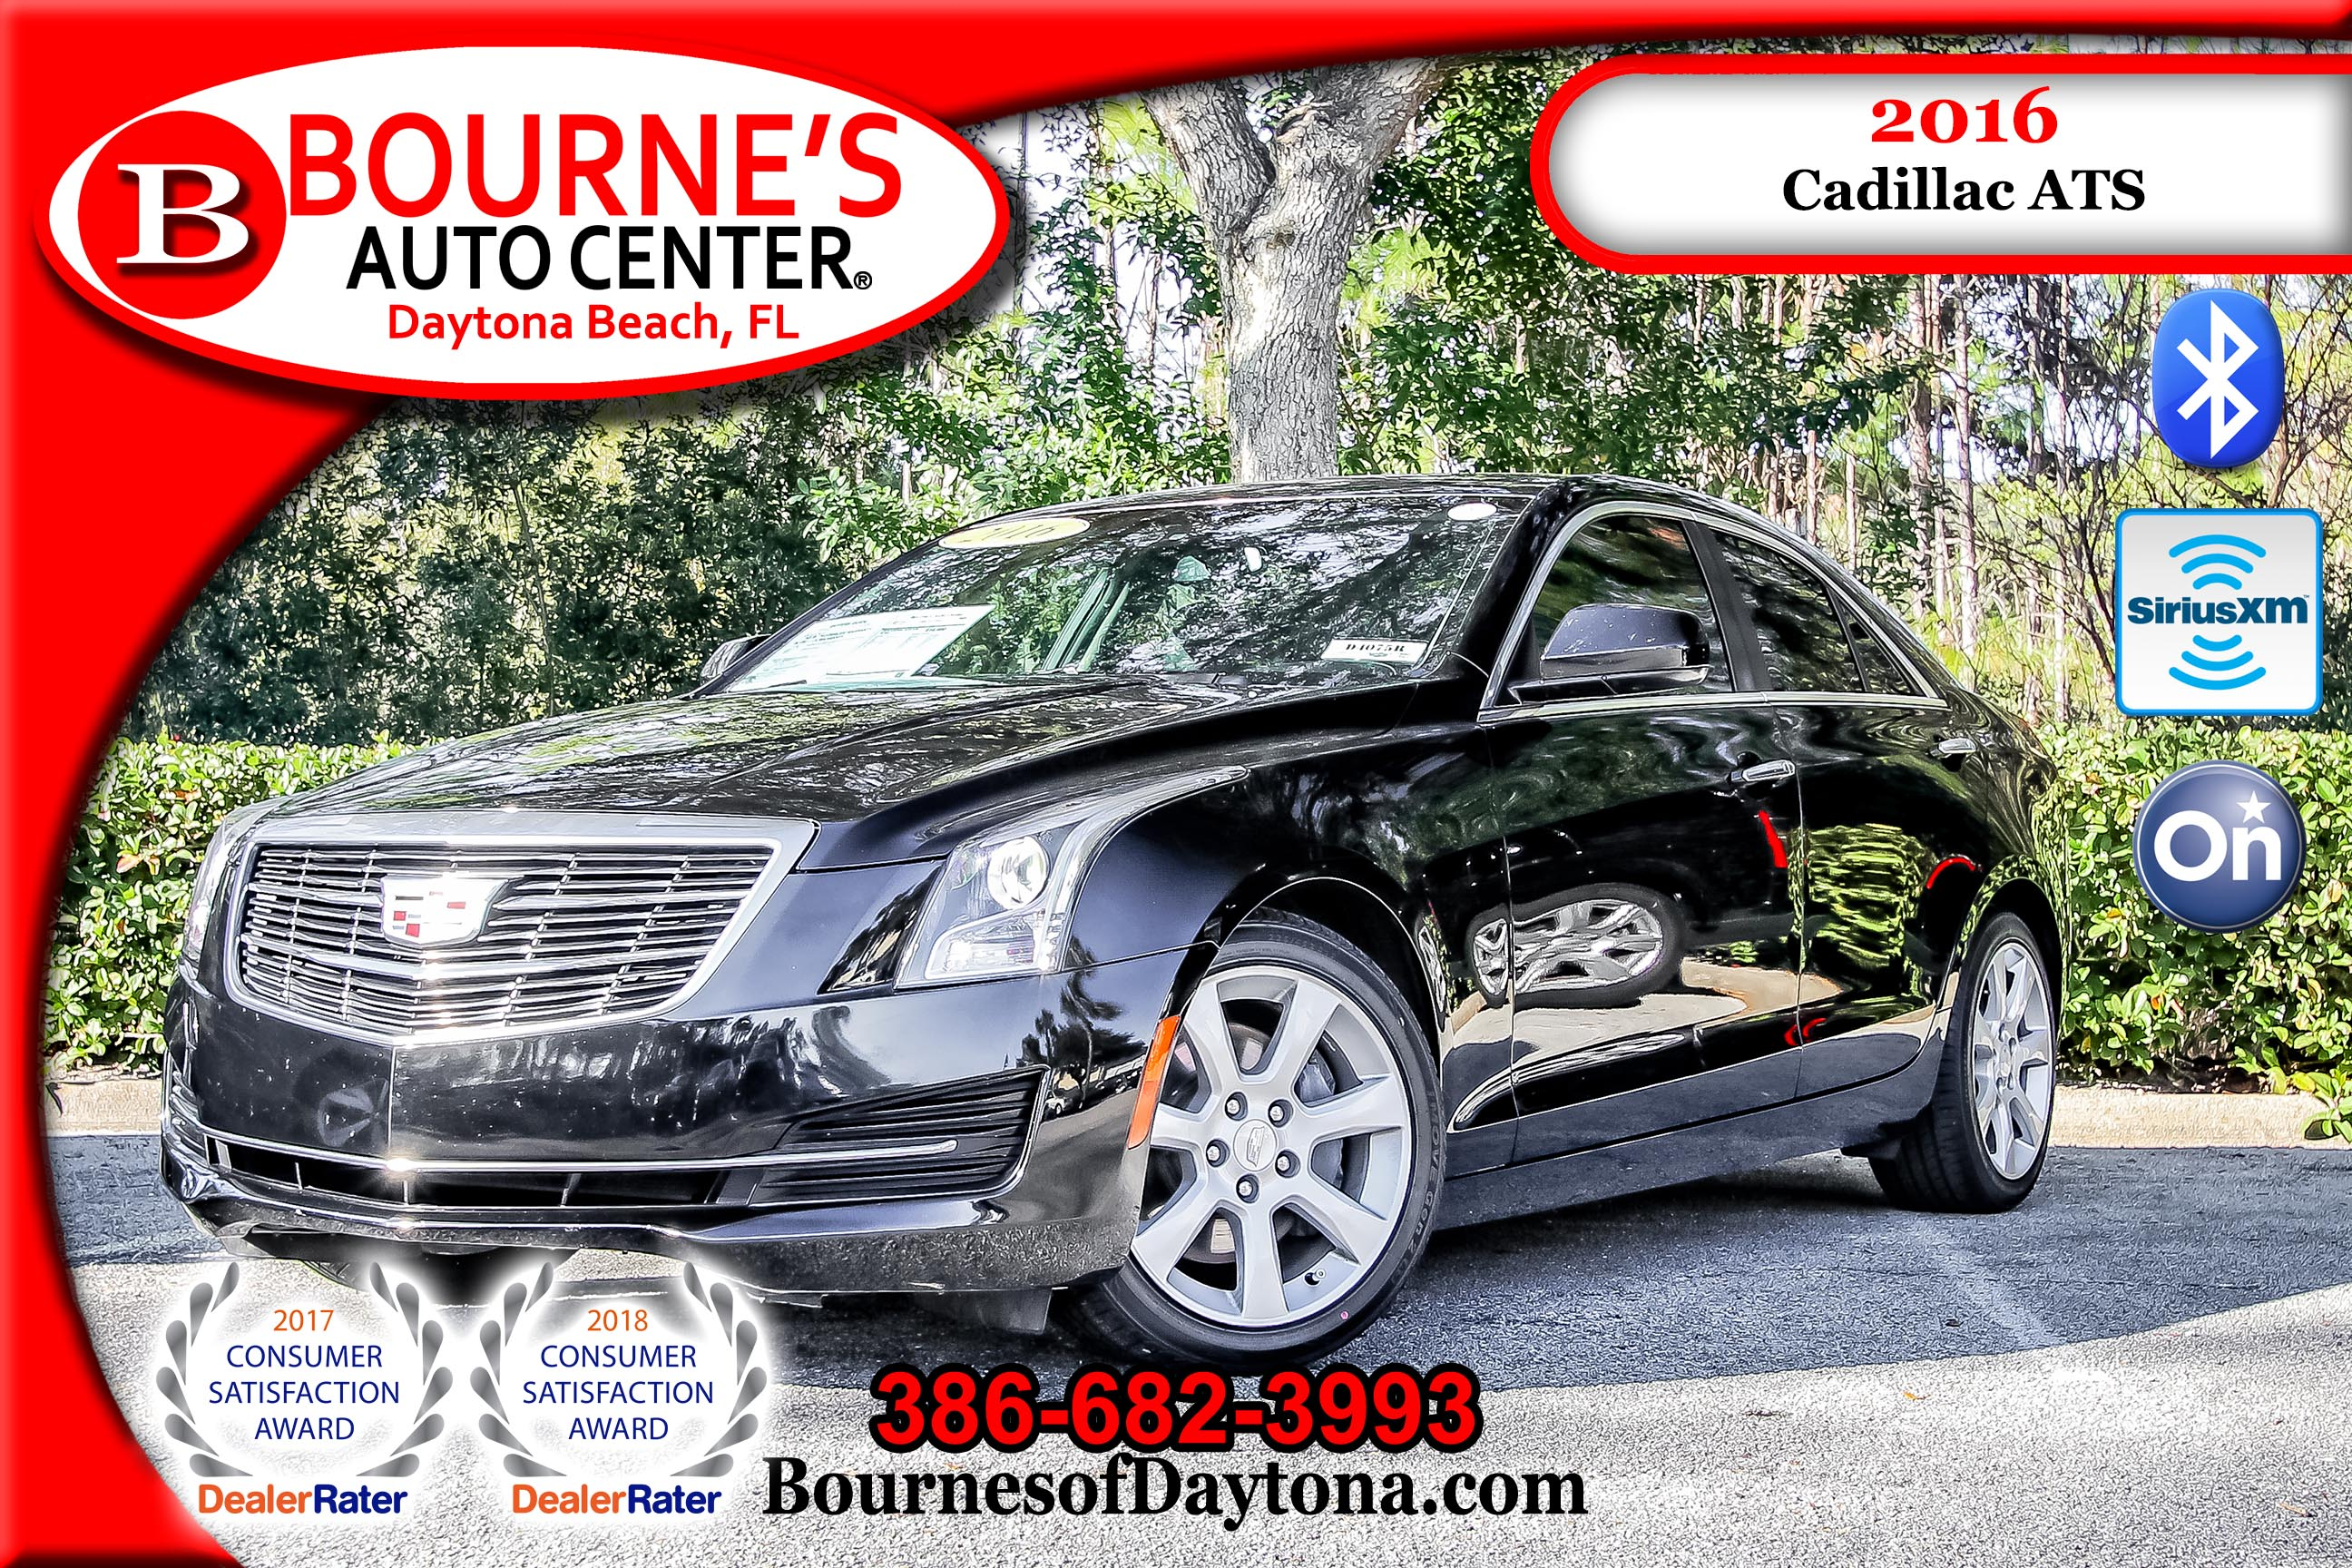 2016 Cadillac ATS 2.0L Turbo OnStar/ XM/ Leather Sedan